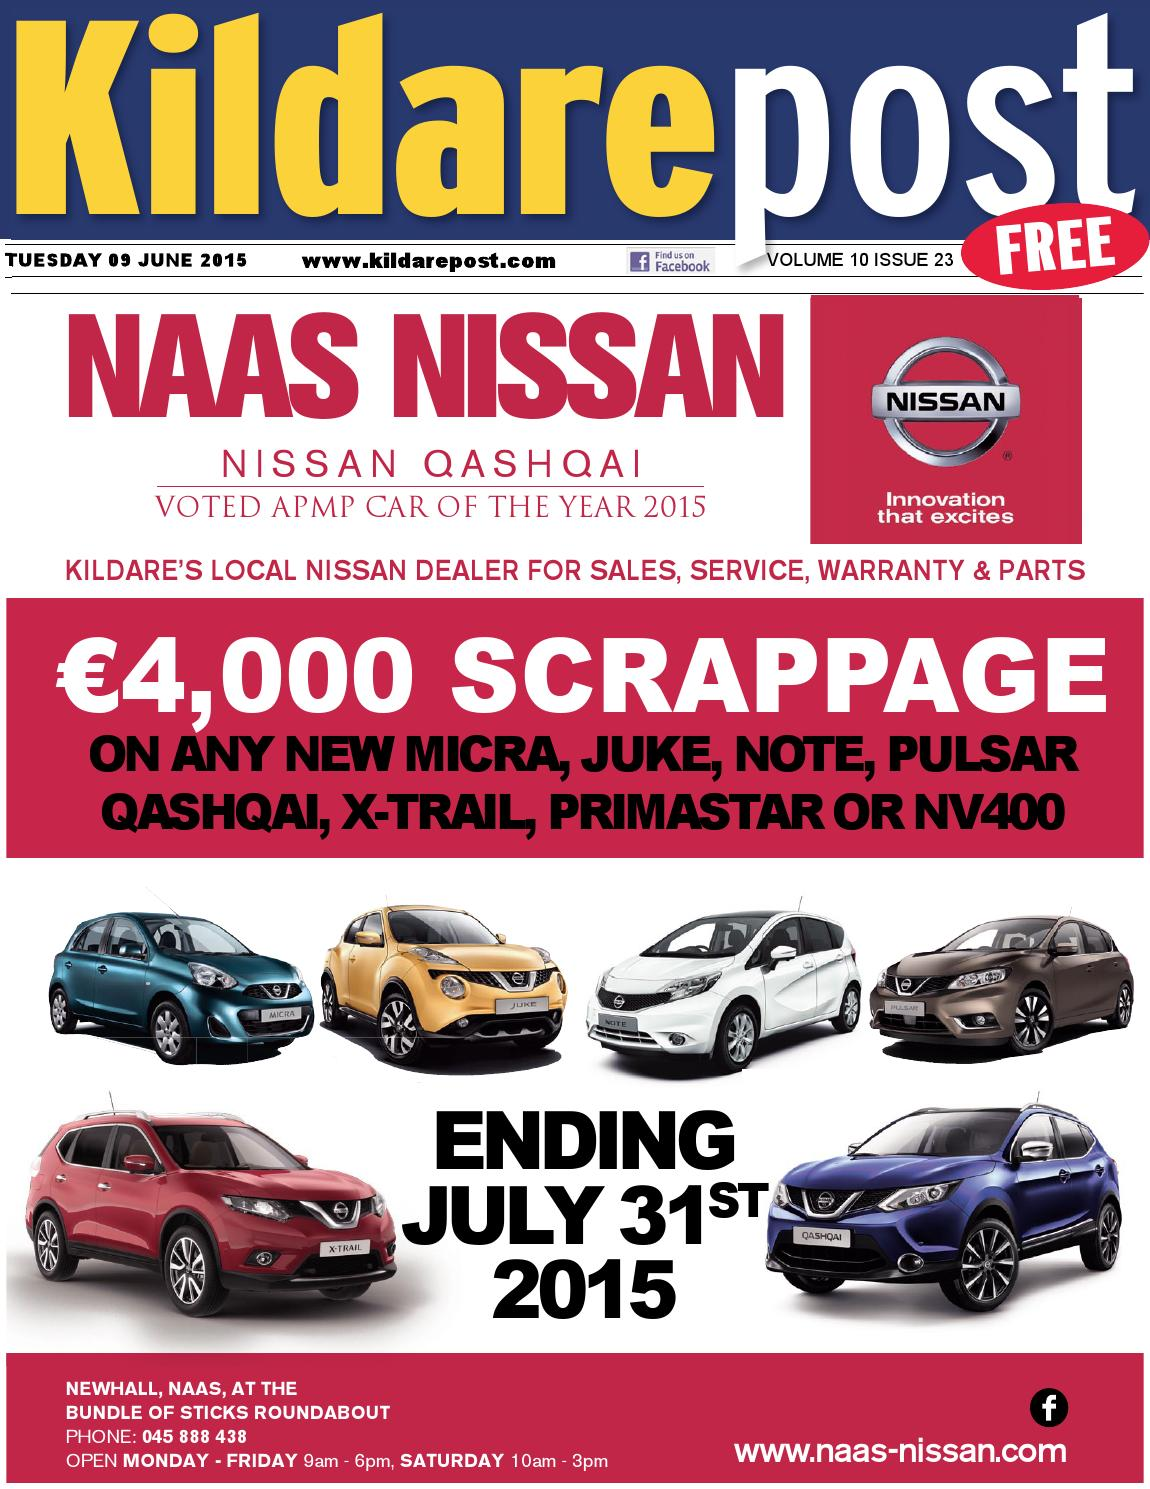 039ab1758c 9 June 2015 Kildare Post by River Media Newspapers - issuu